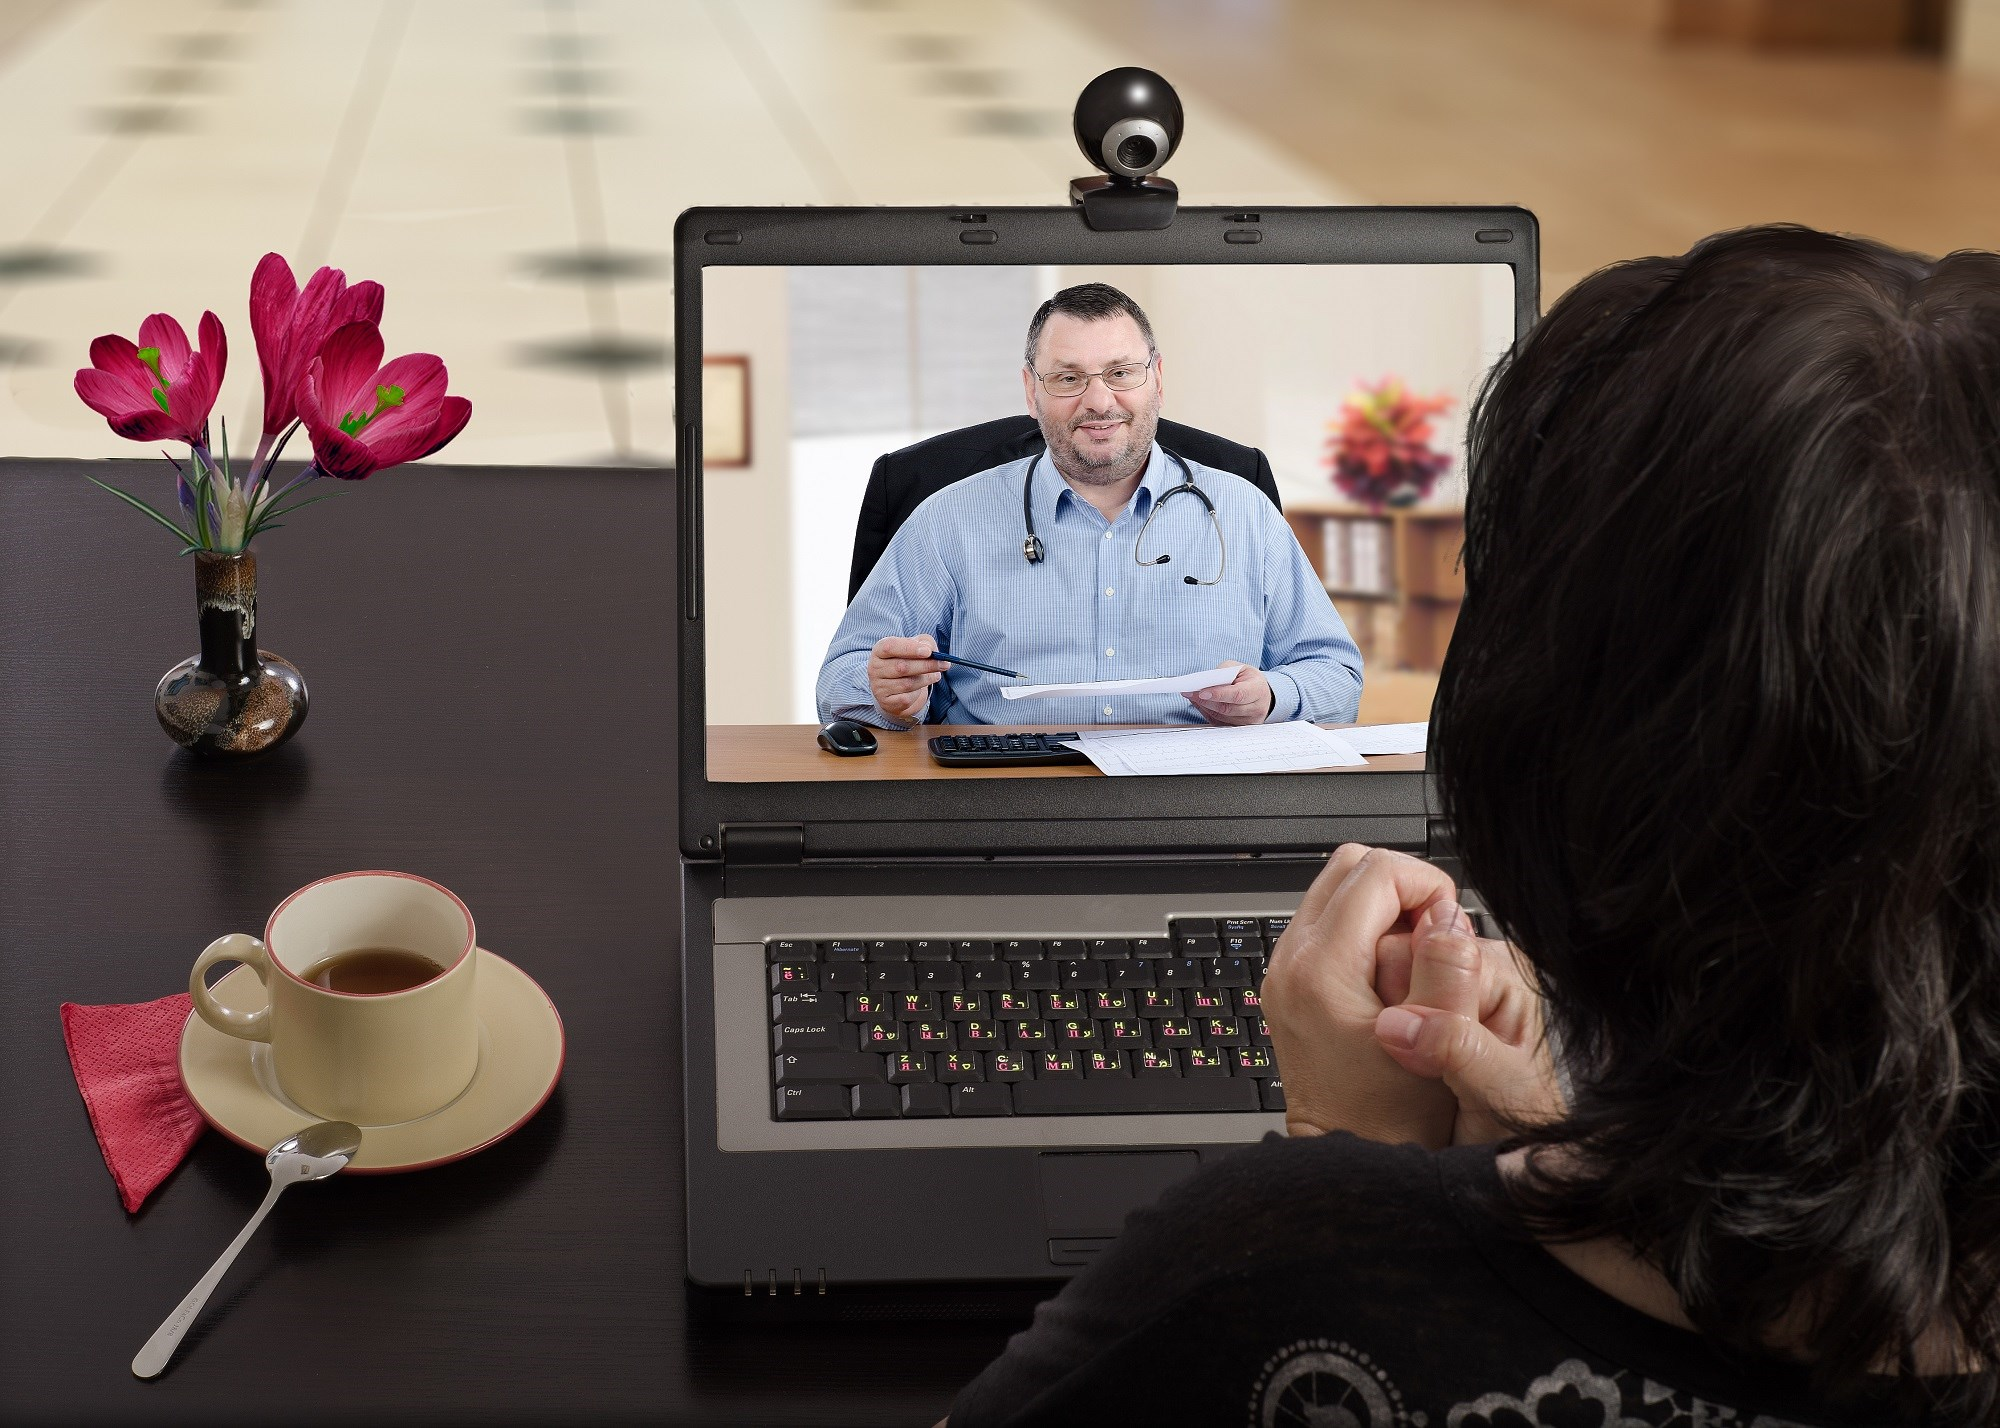 Telemedicine Intervention for Neuropsychiatric Symptoms in Long-term Care Facilities